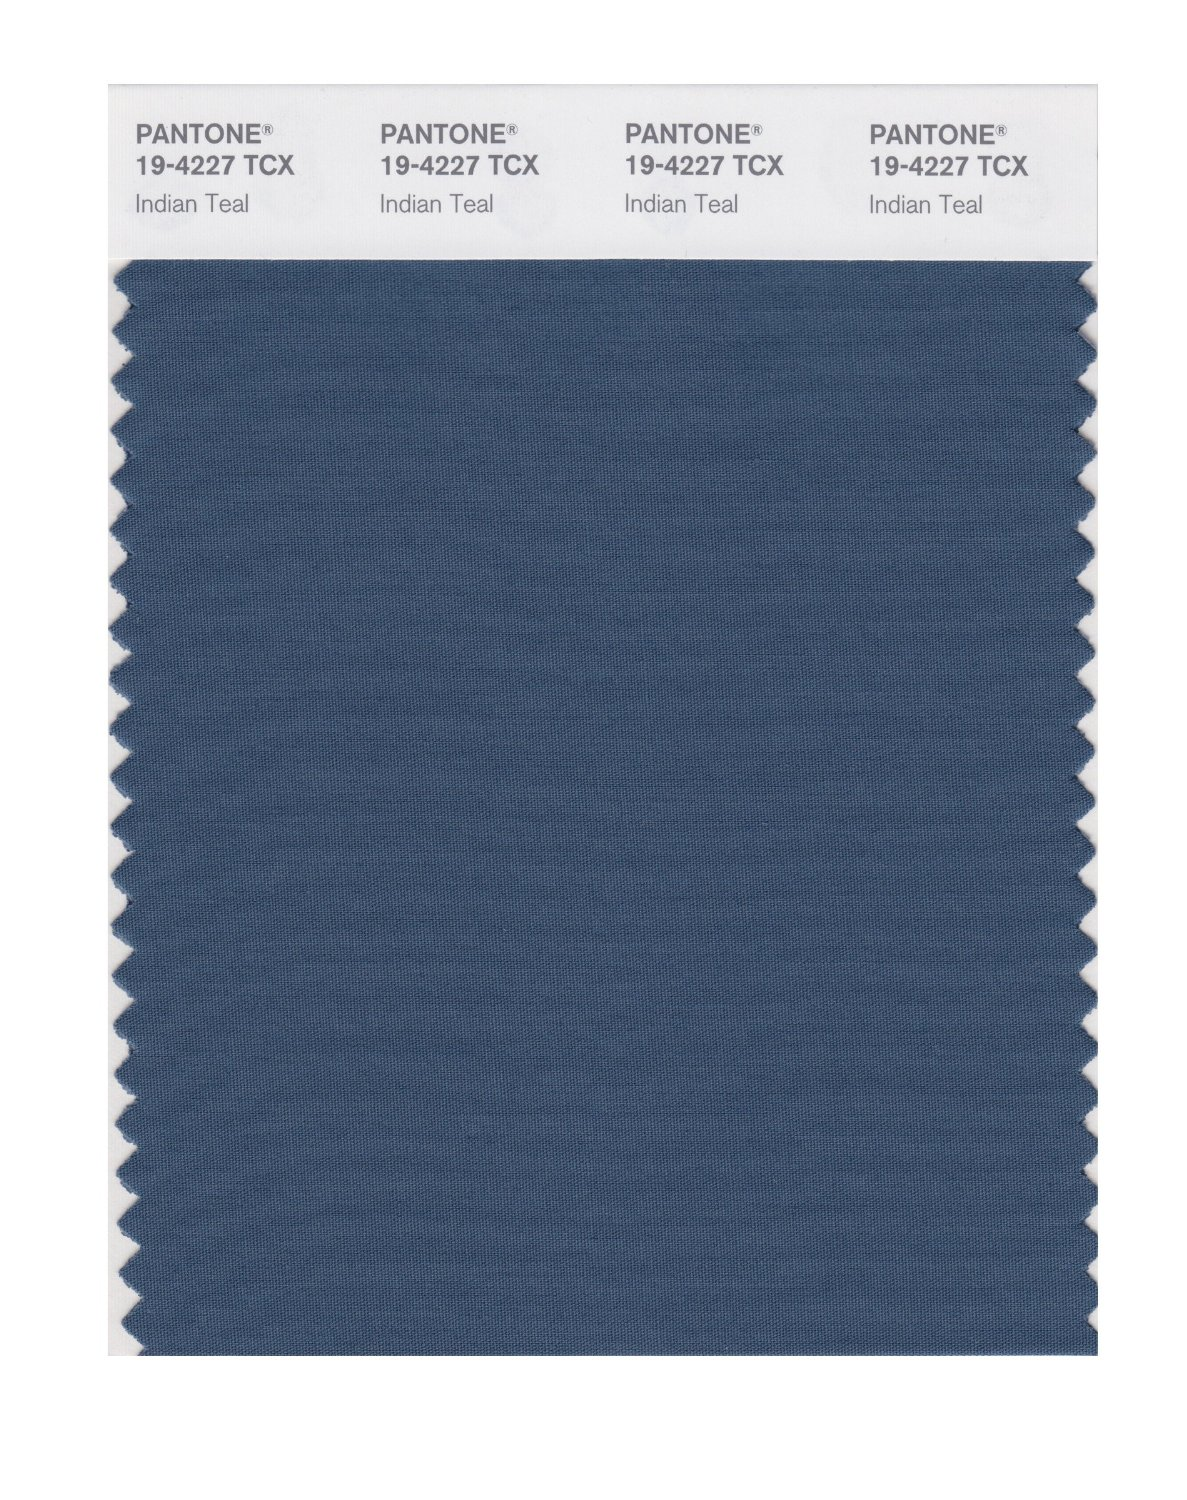 Pantone Smart Swatch 19-4227 Indian Teal